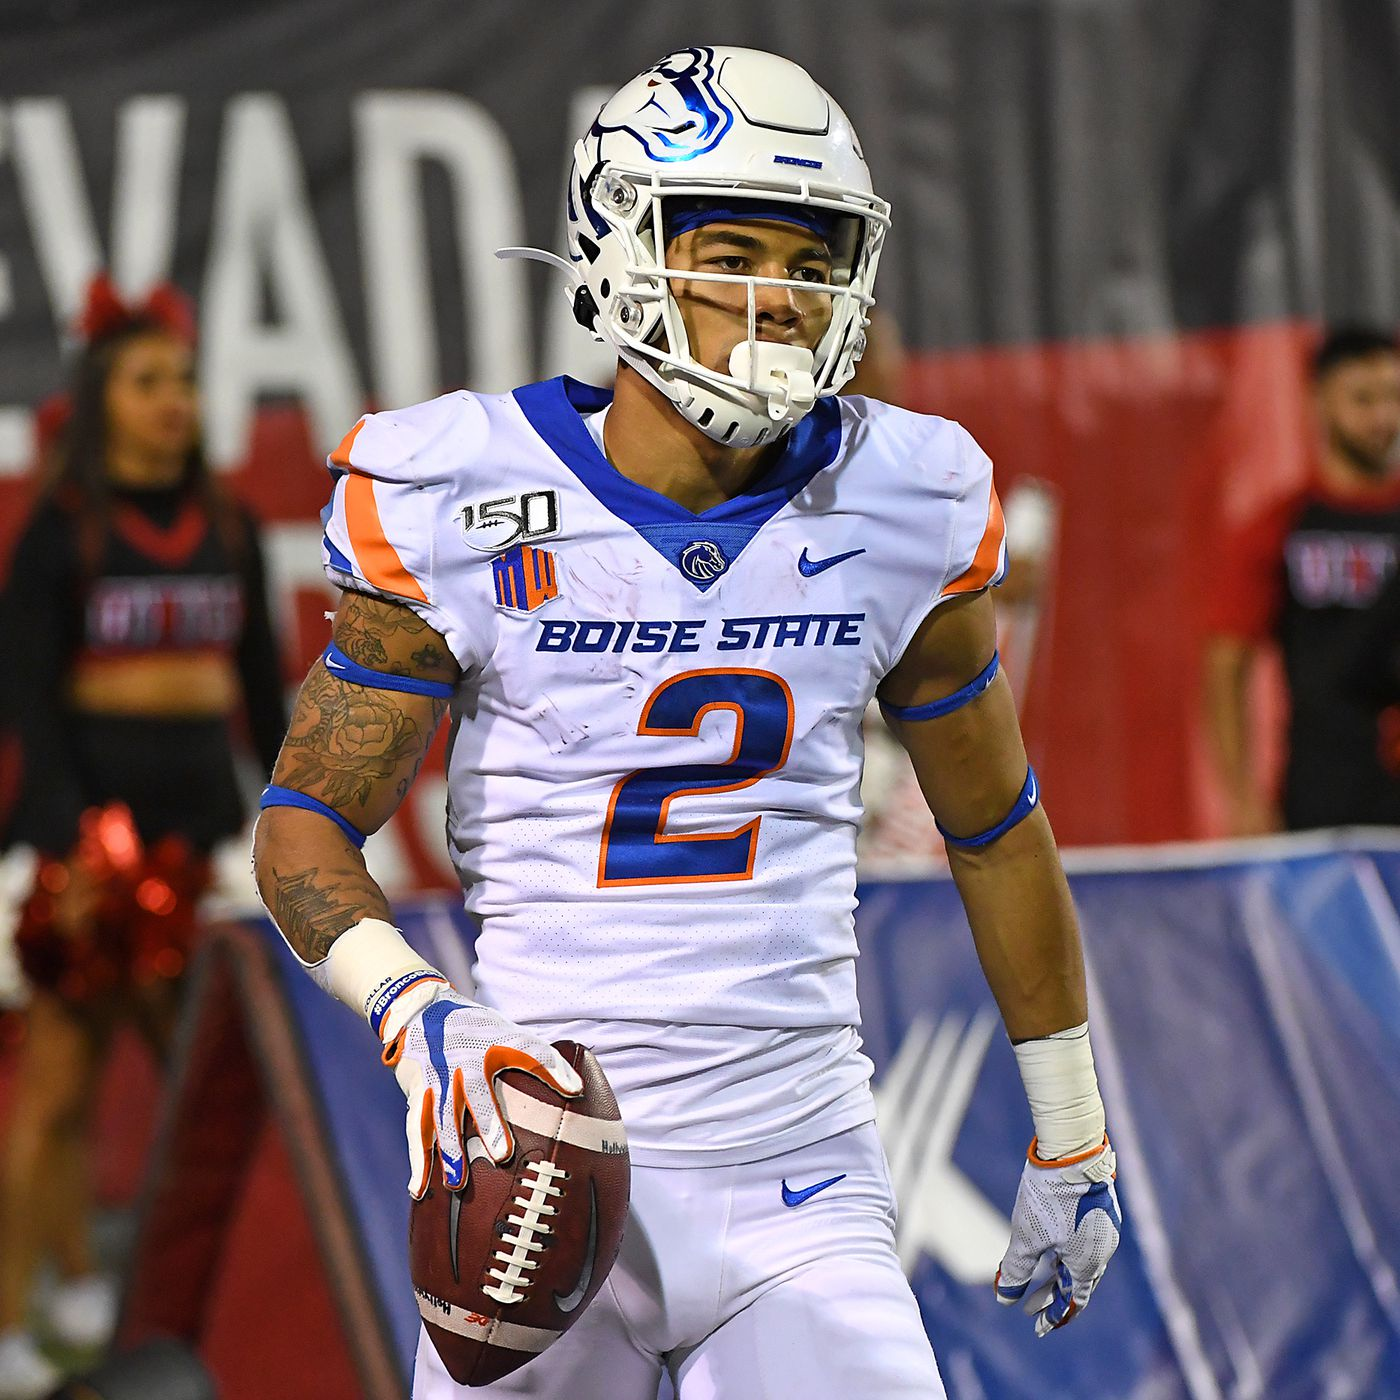 Boise State Christmas Break 2020 2020 Recruiting Breakdown: Boise State   Mountain West Connection